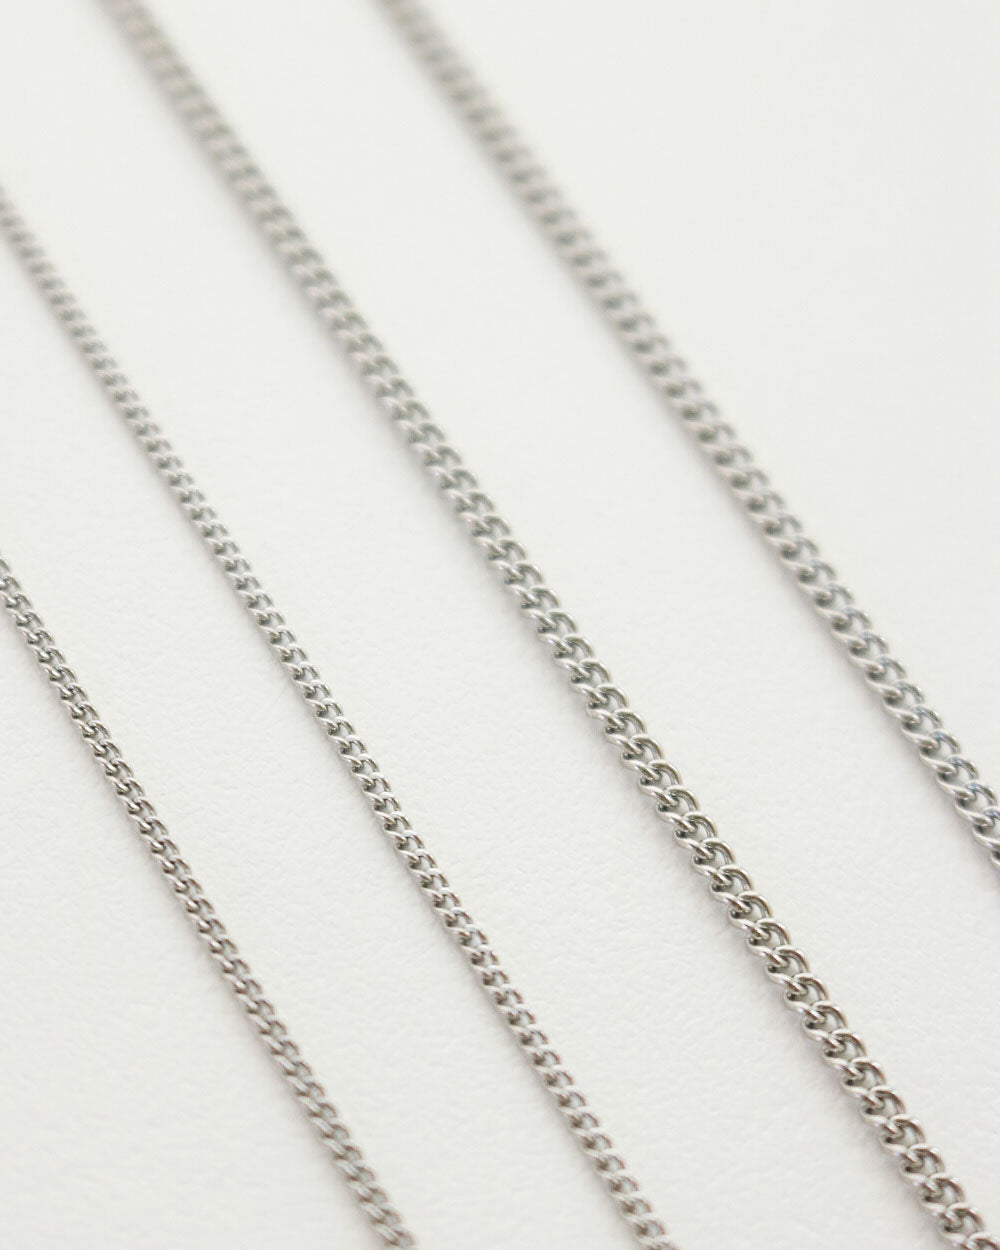 Simple thin silver chains perfect for layering - The Hexad